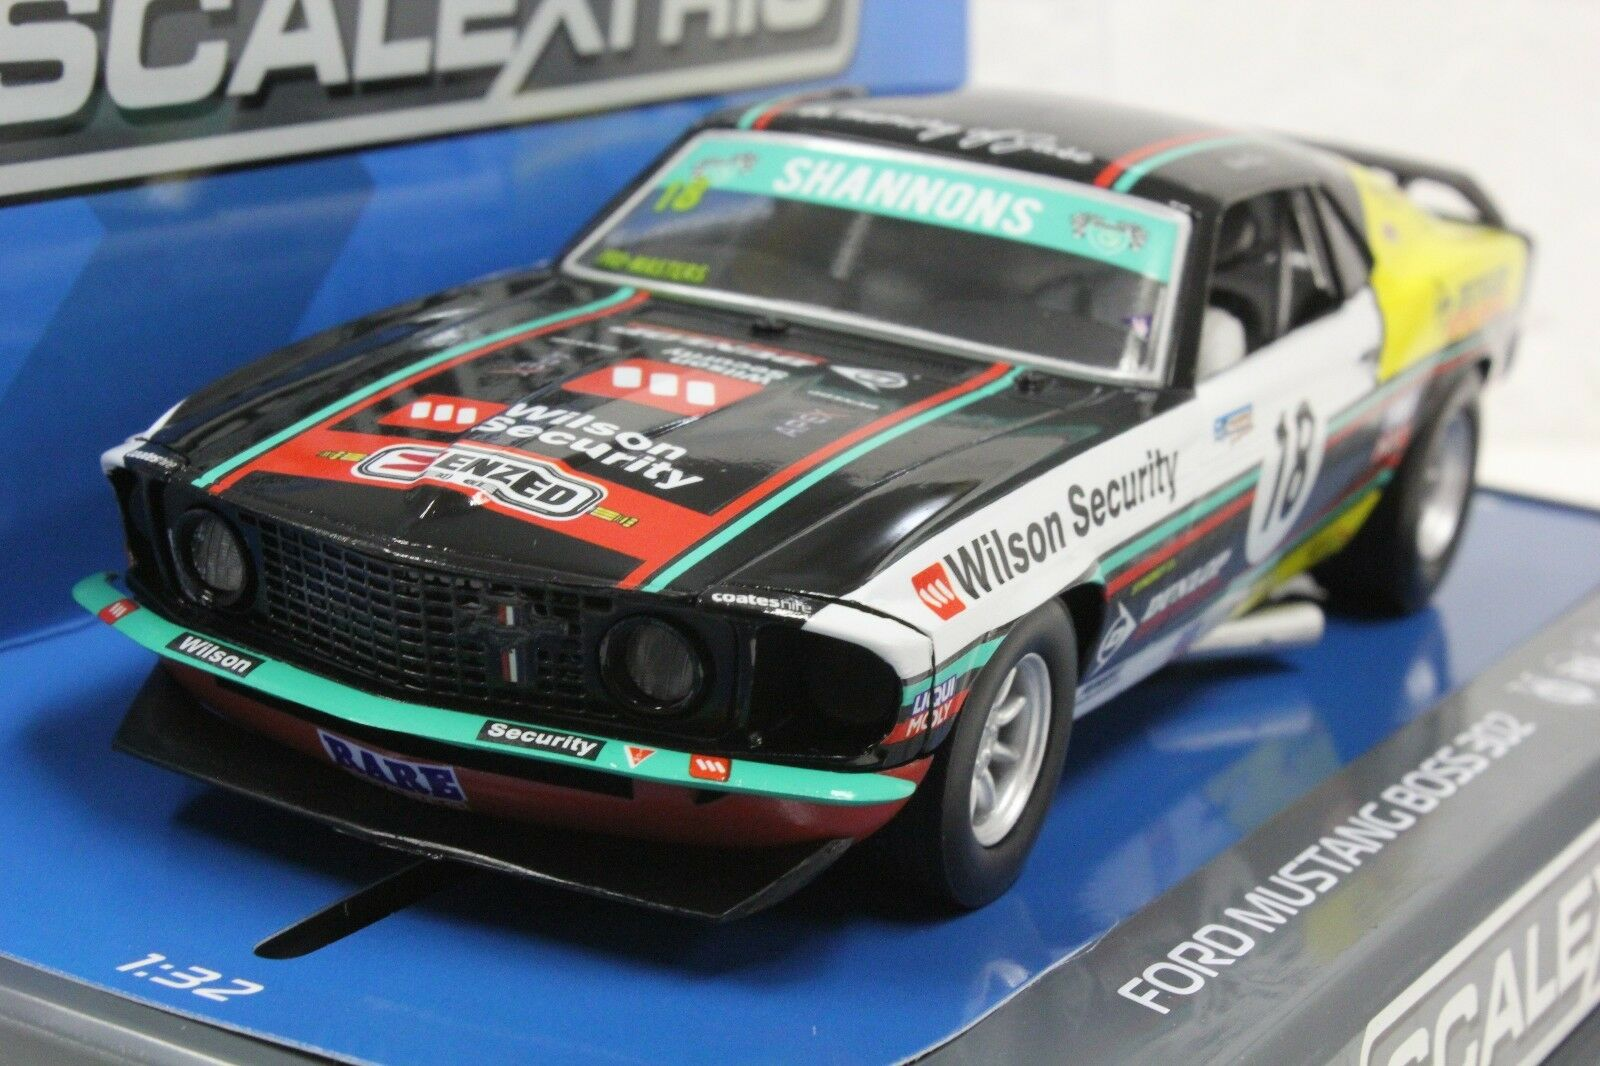 Scalextric C3728 Ford Mustang Boss 302 1969 New 1 32 Slot Car Dpr Of 3only 5 Available